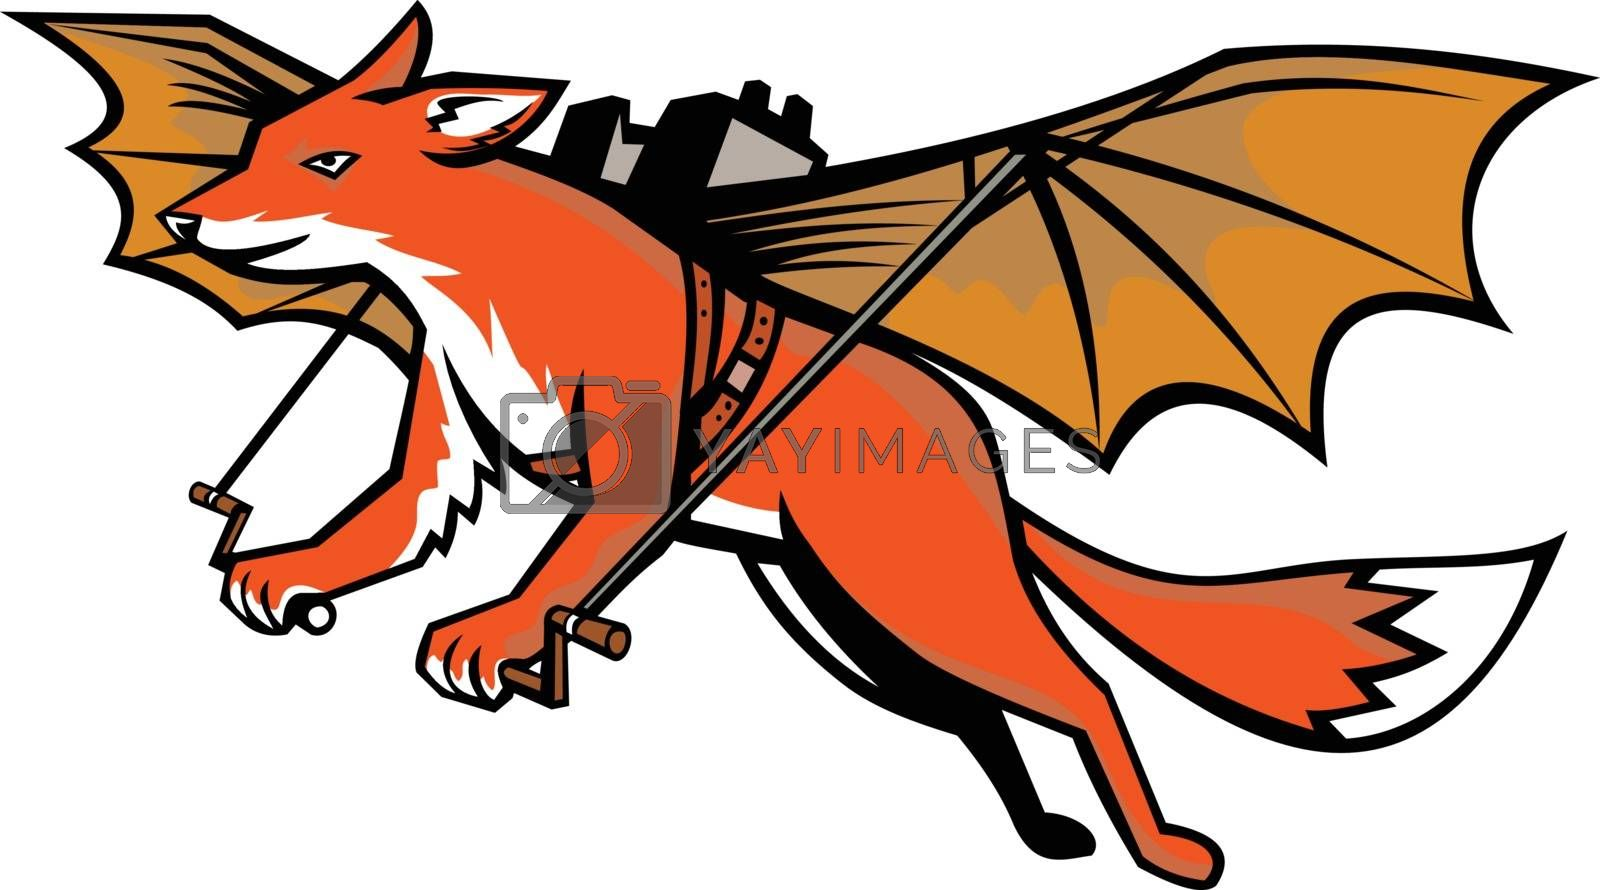 Mascot icon illustration of a flying fox strapped with mechanical wings in full flight  viewed from side  on isolated background in retro style.